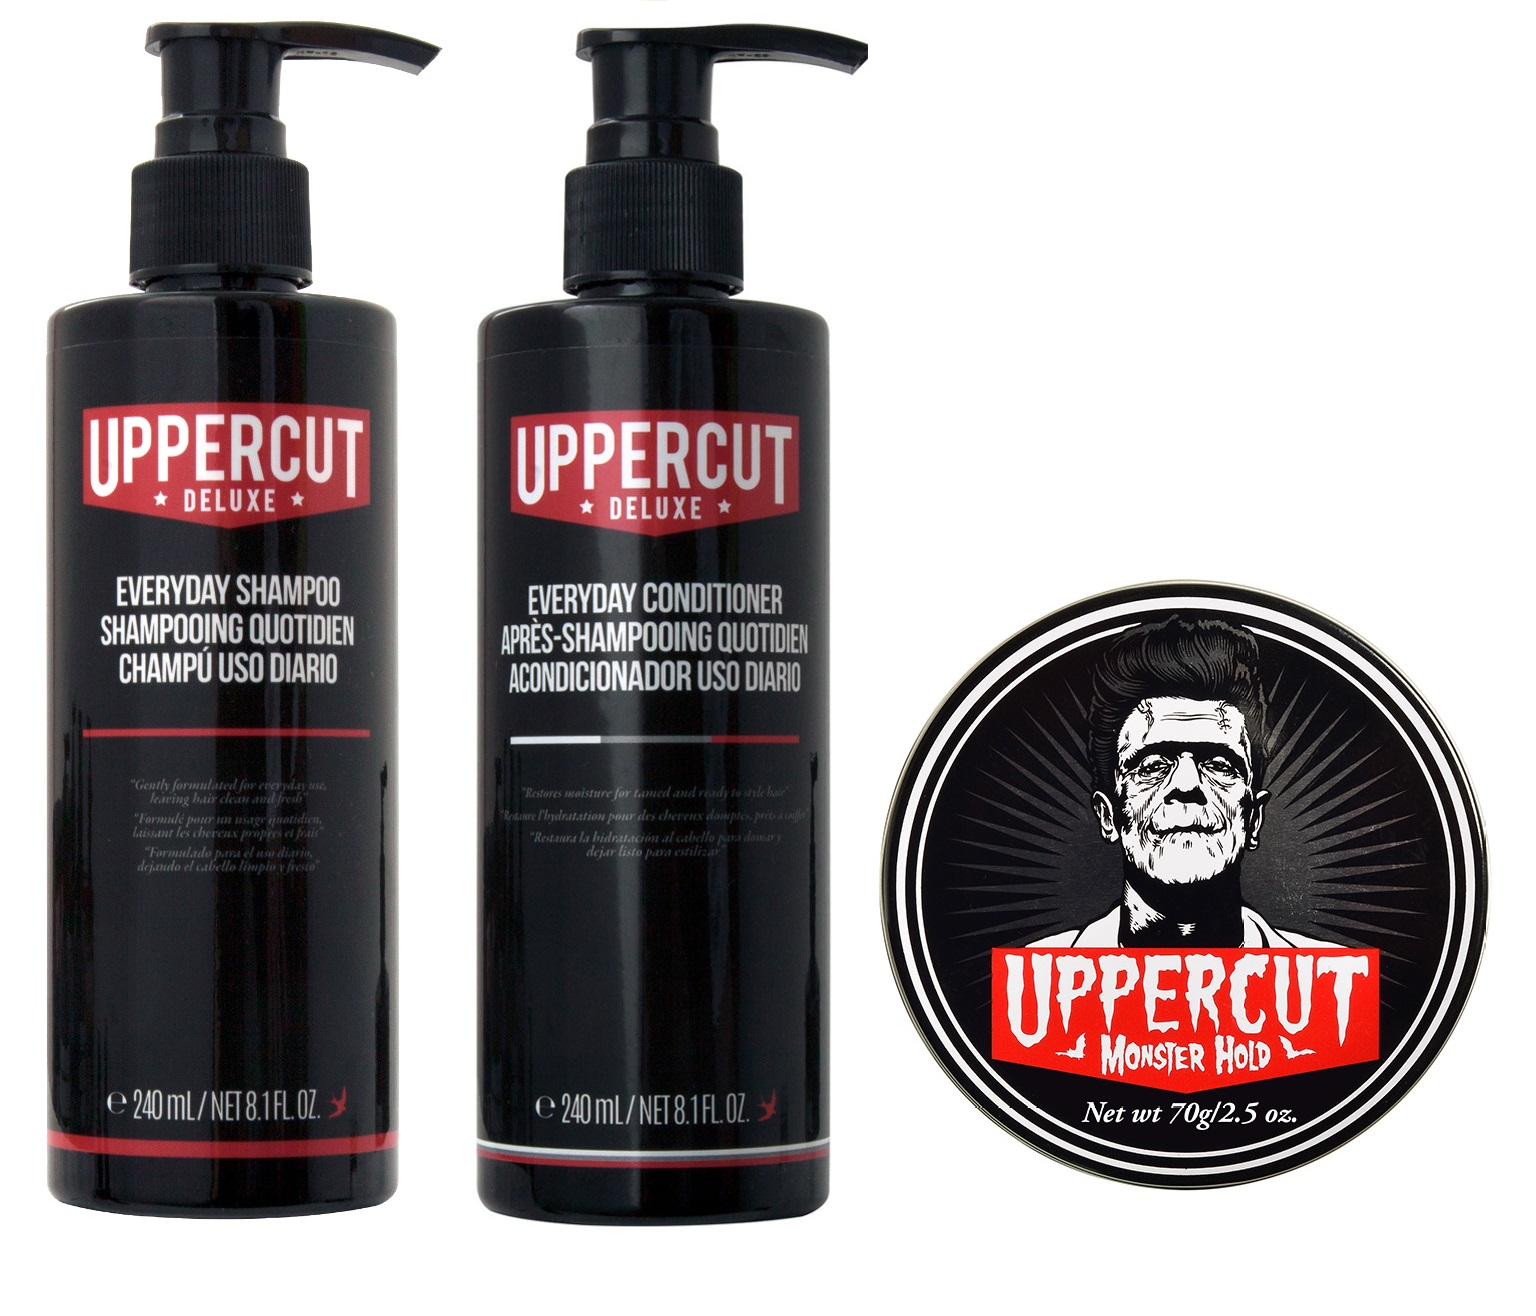 Uppercut Deluxe Everyday Shampoo 240ml + Uppercut Deluxe Everyday Conditioner 240ml + Monster Hold 70g